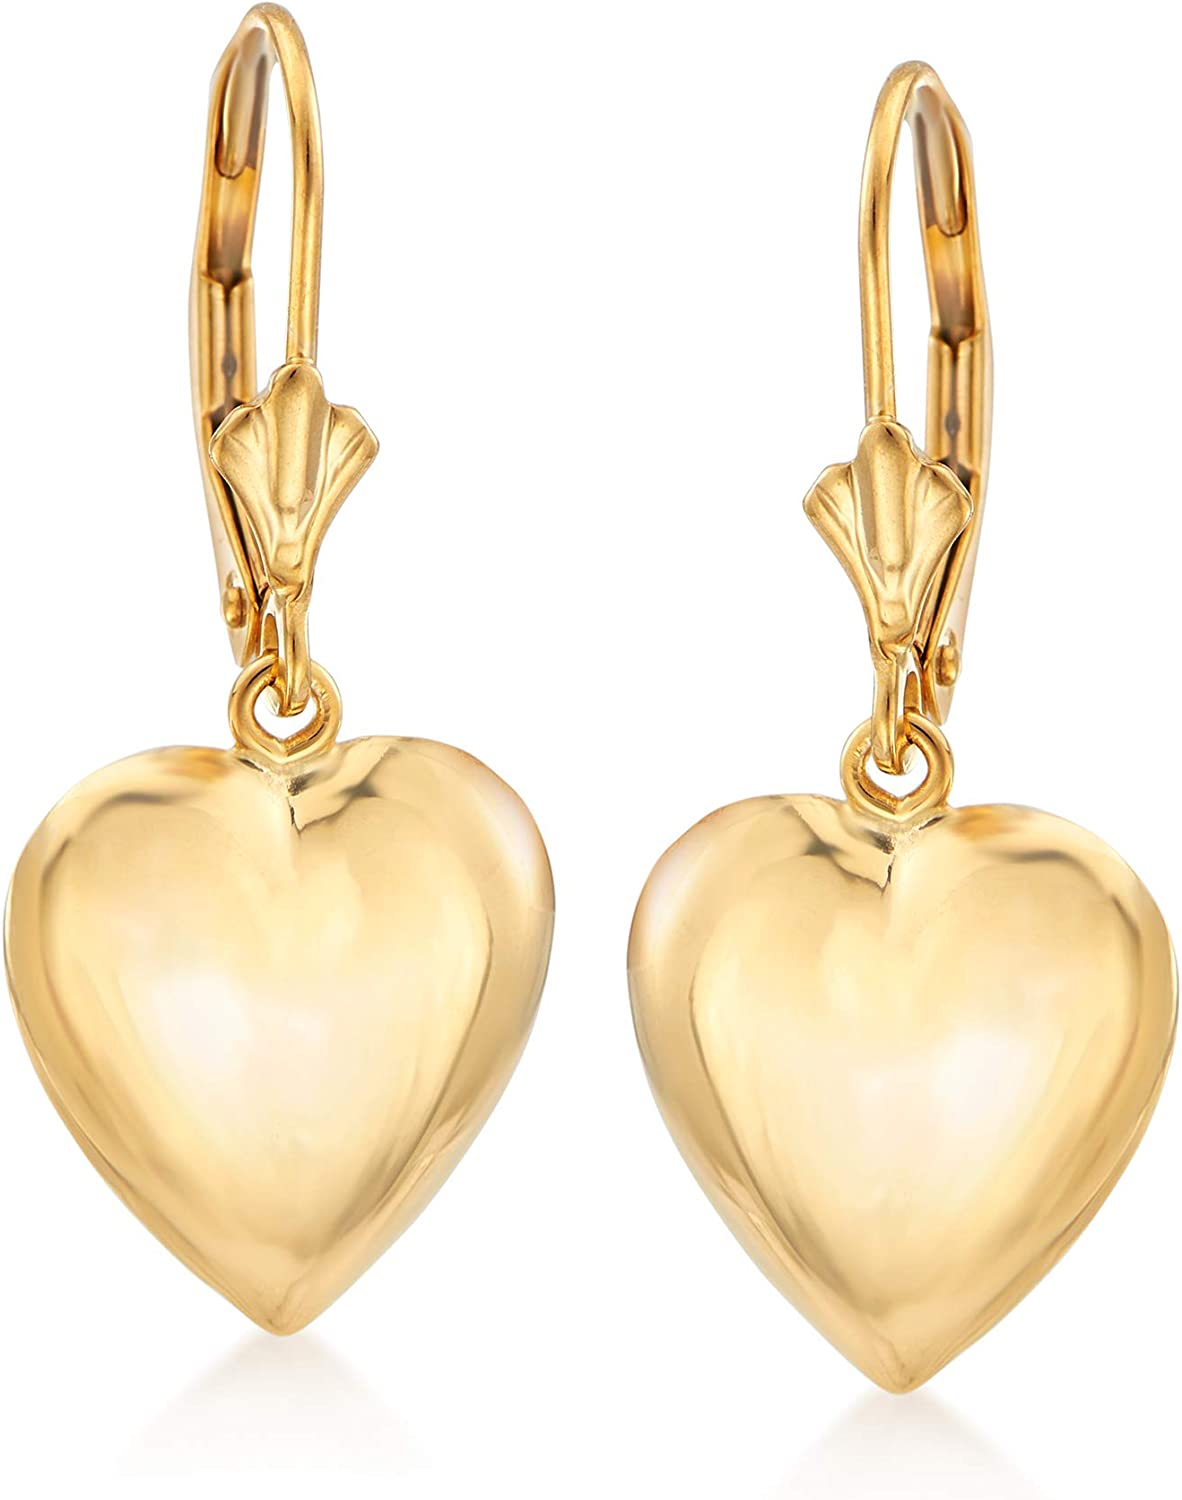 Ross-Simons 14kt Yellow Cheap mail order Don't miss the campaign shopping Gold Puffed Heart Earrings Drop